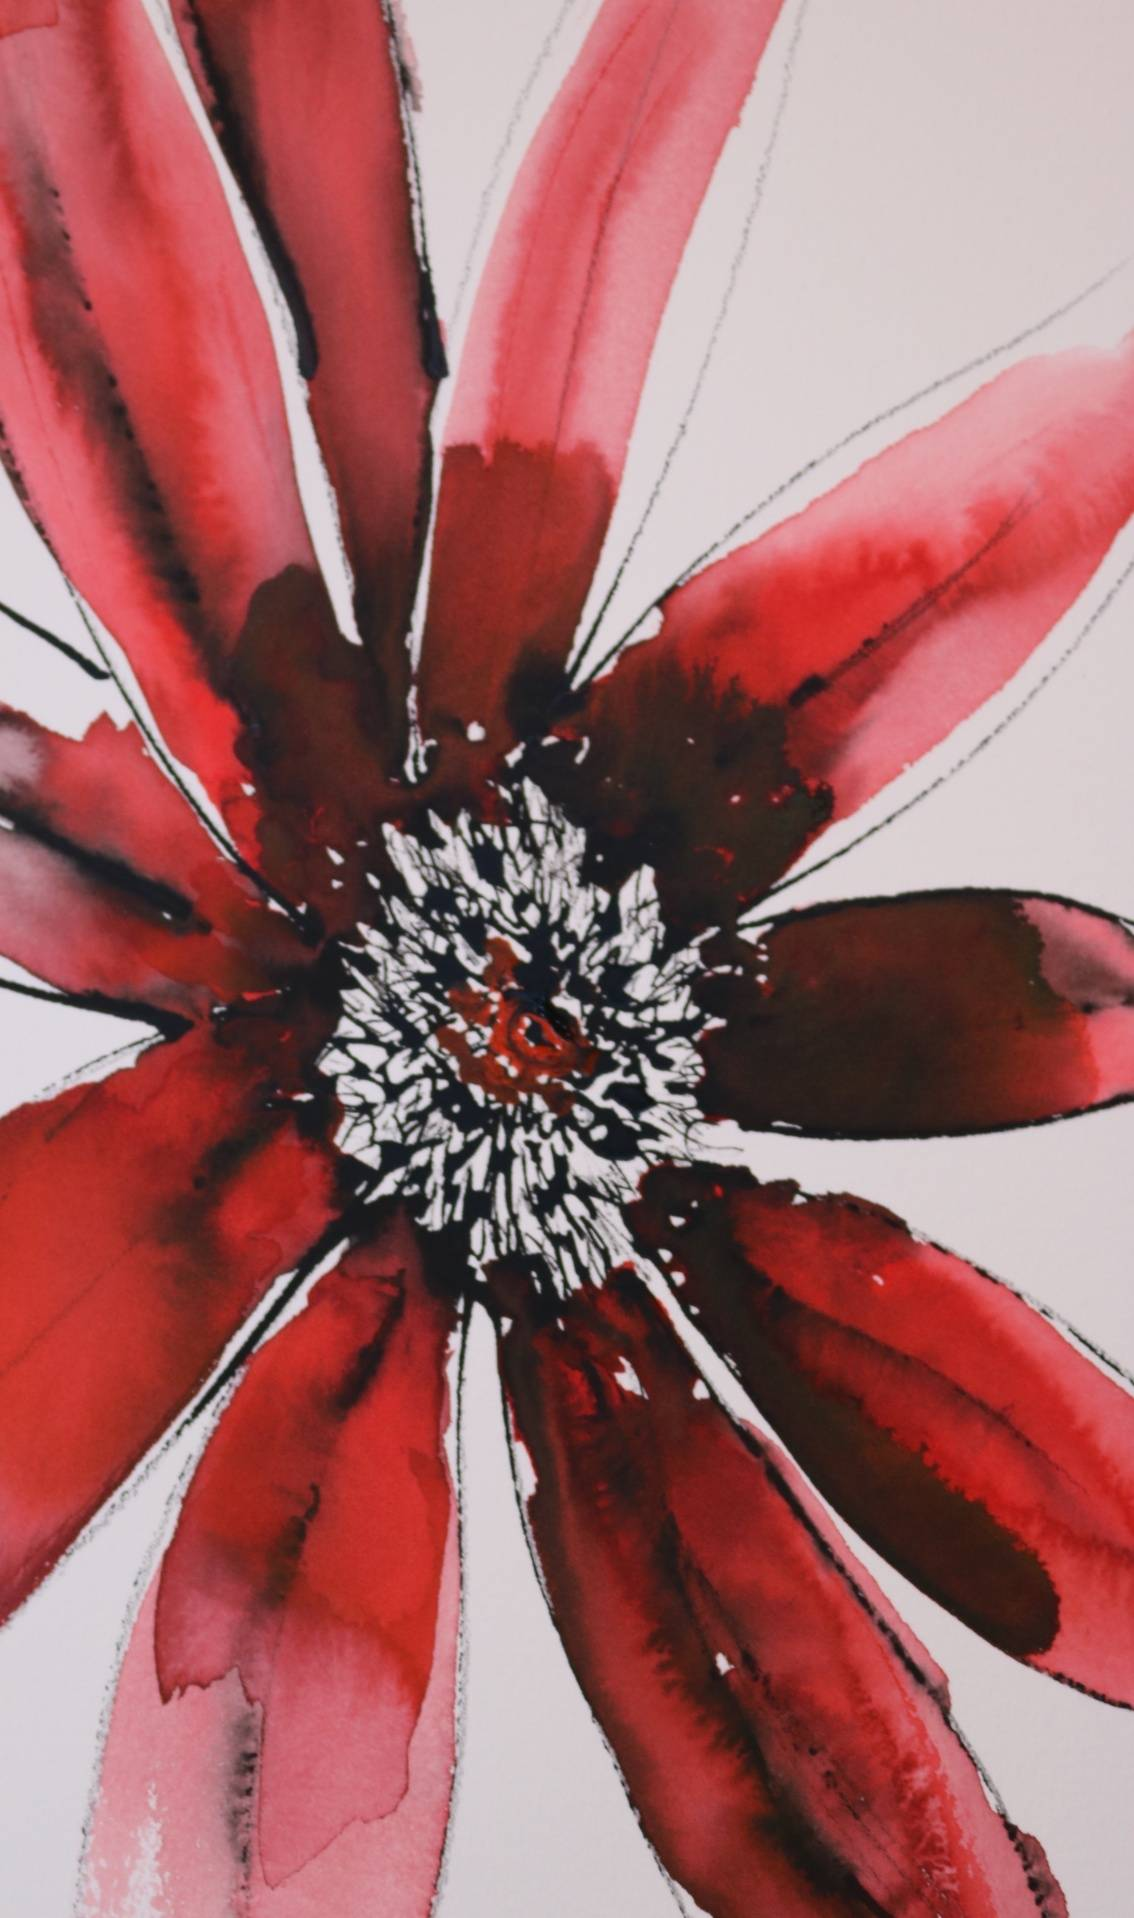 Flowers Study in Ink 3